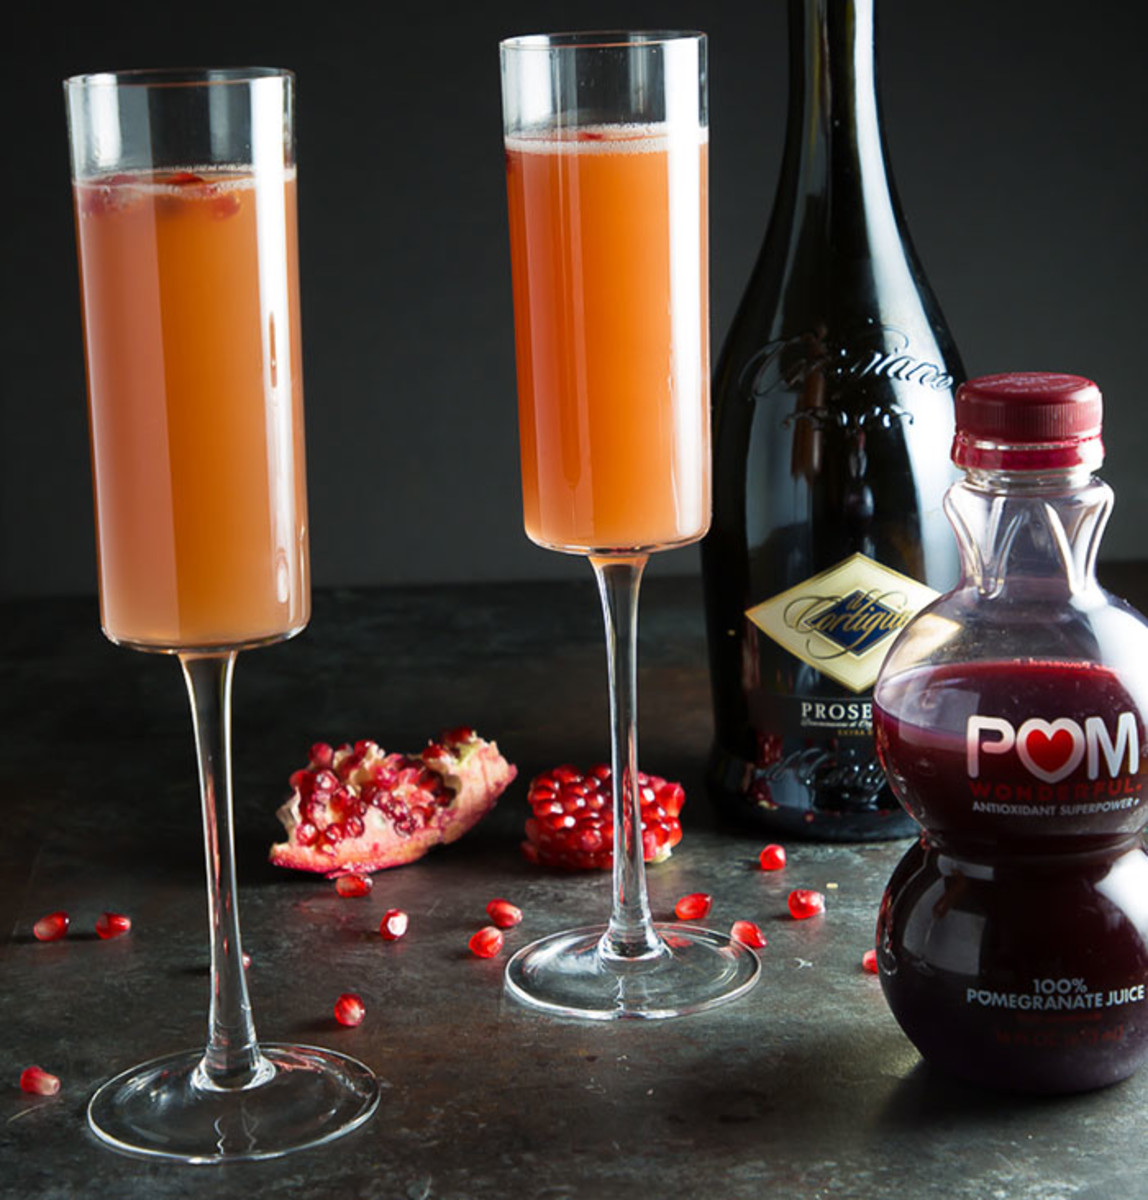 Pomegranate Mimosa Ingredients #mimosa #fallcocktails